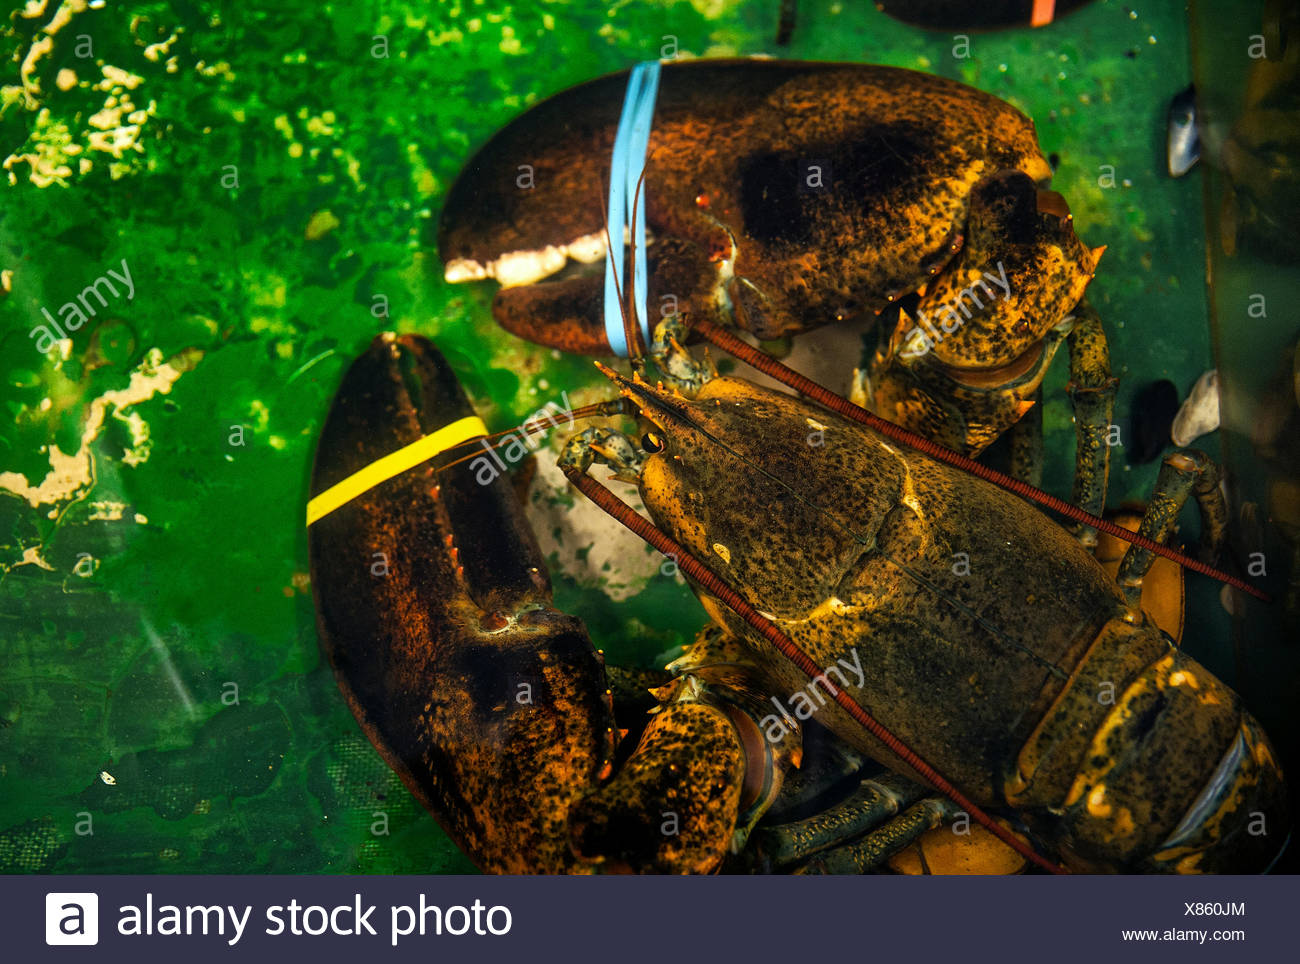 Live lobster in a seafood market holding tank. - Stock Image